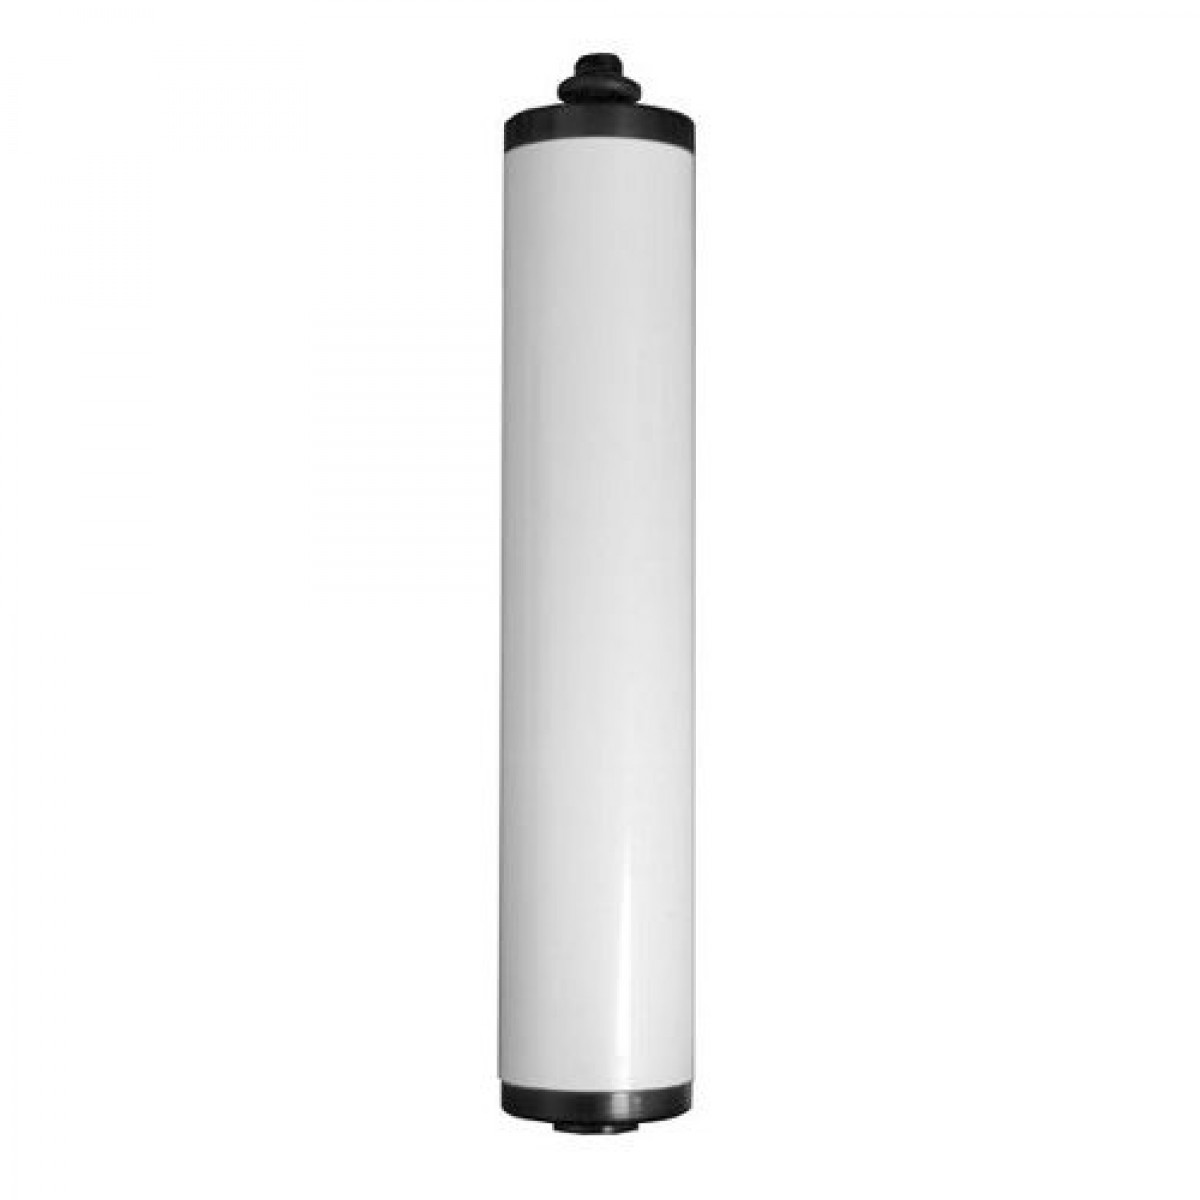 doulton w9240005 kdf ceramic water filter for scale reduction 10 in. Black Bedroom Furniture Sets. Home Design Ideas